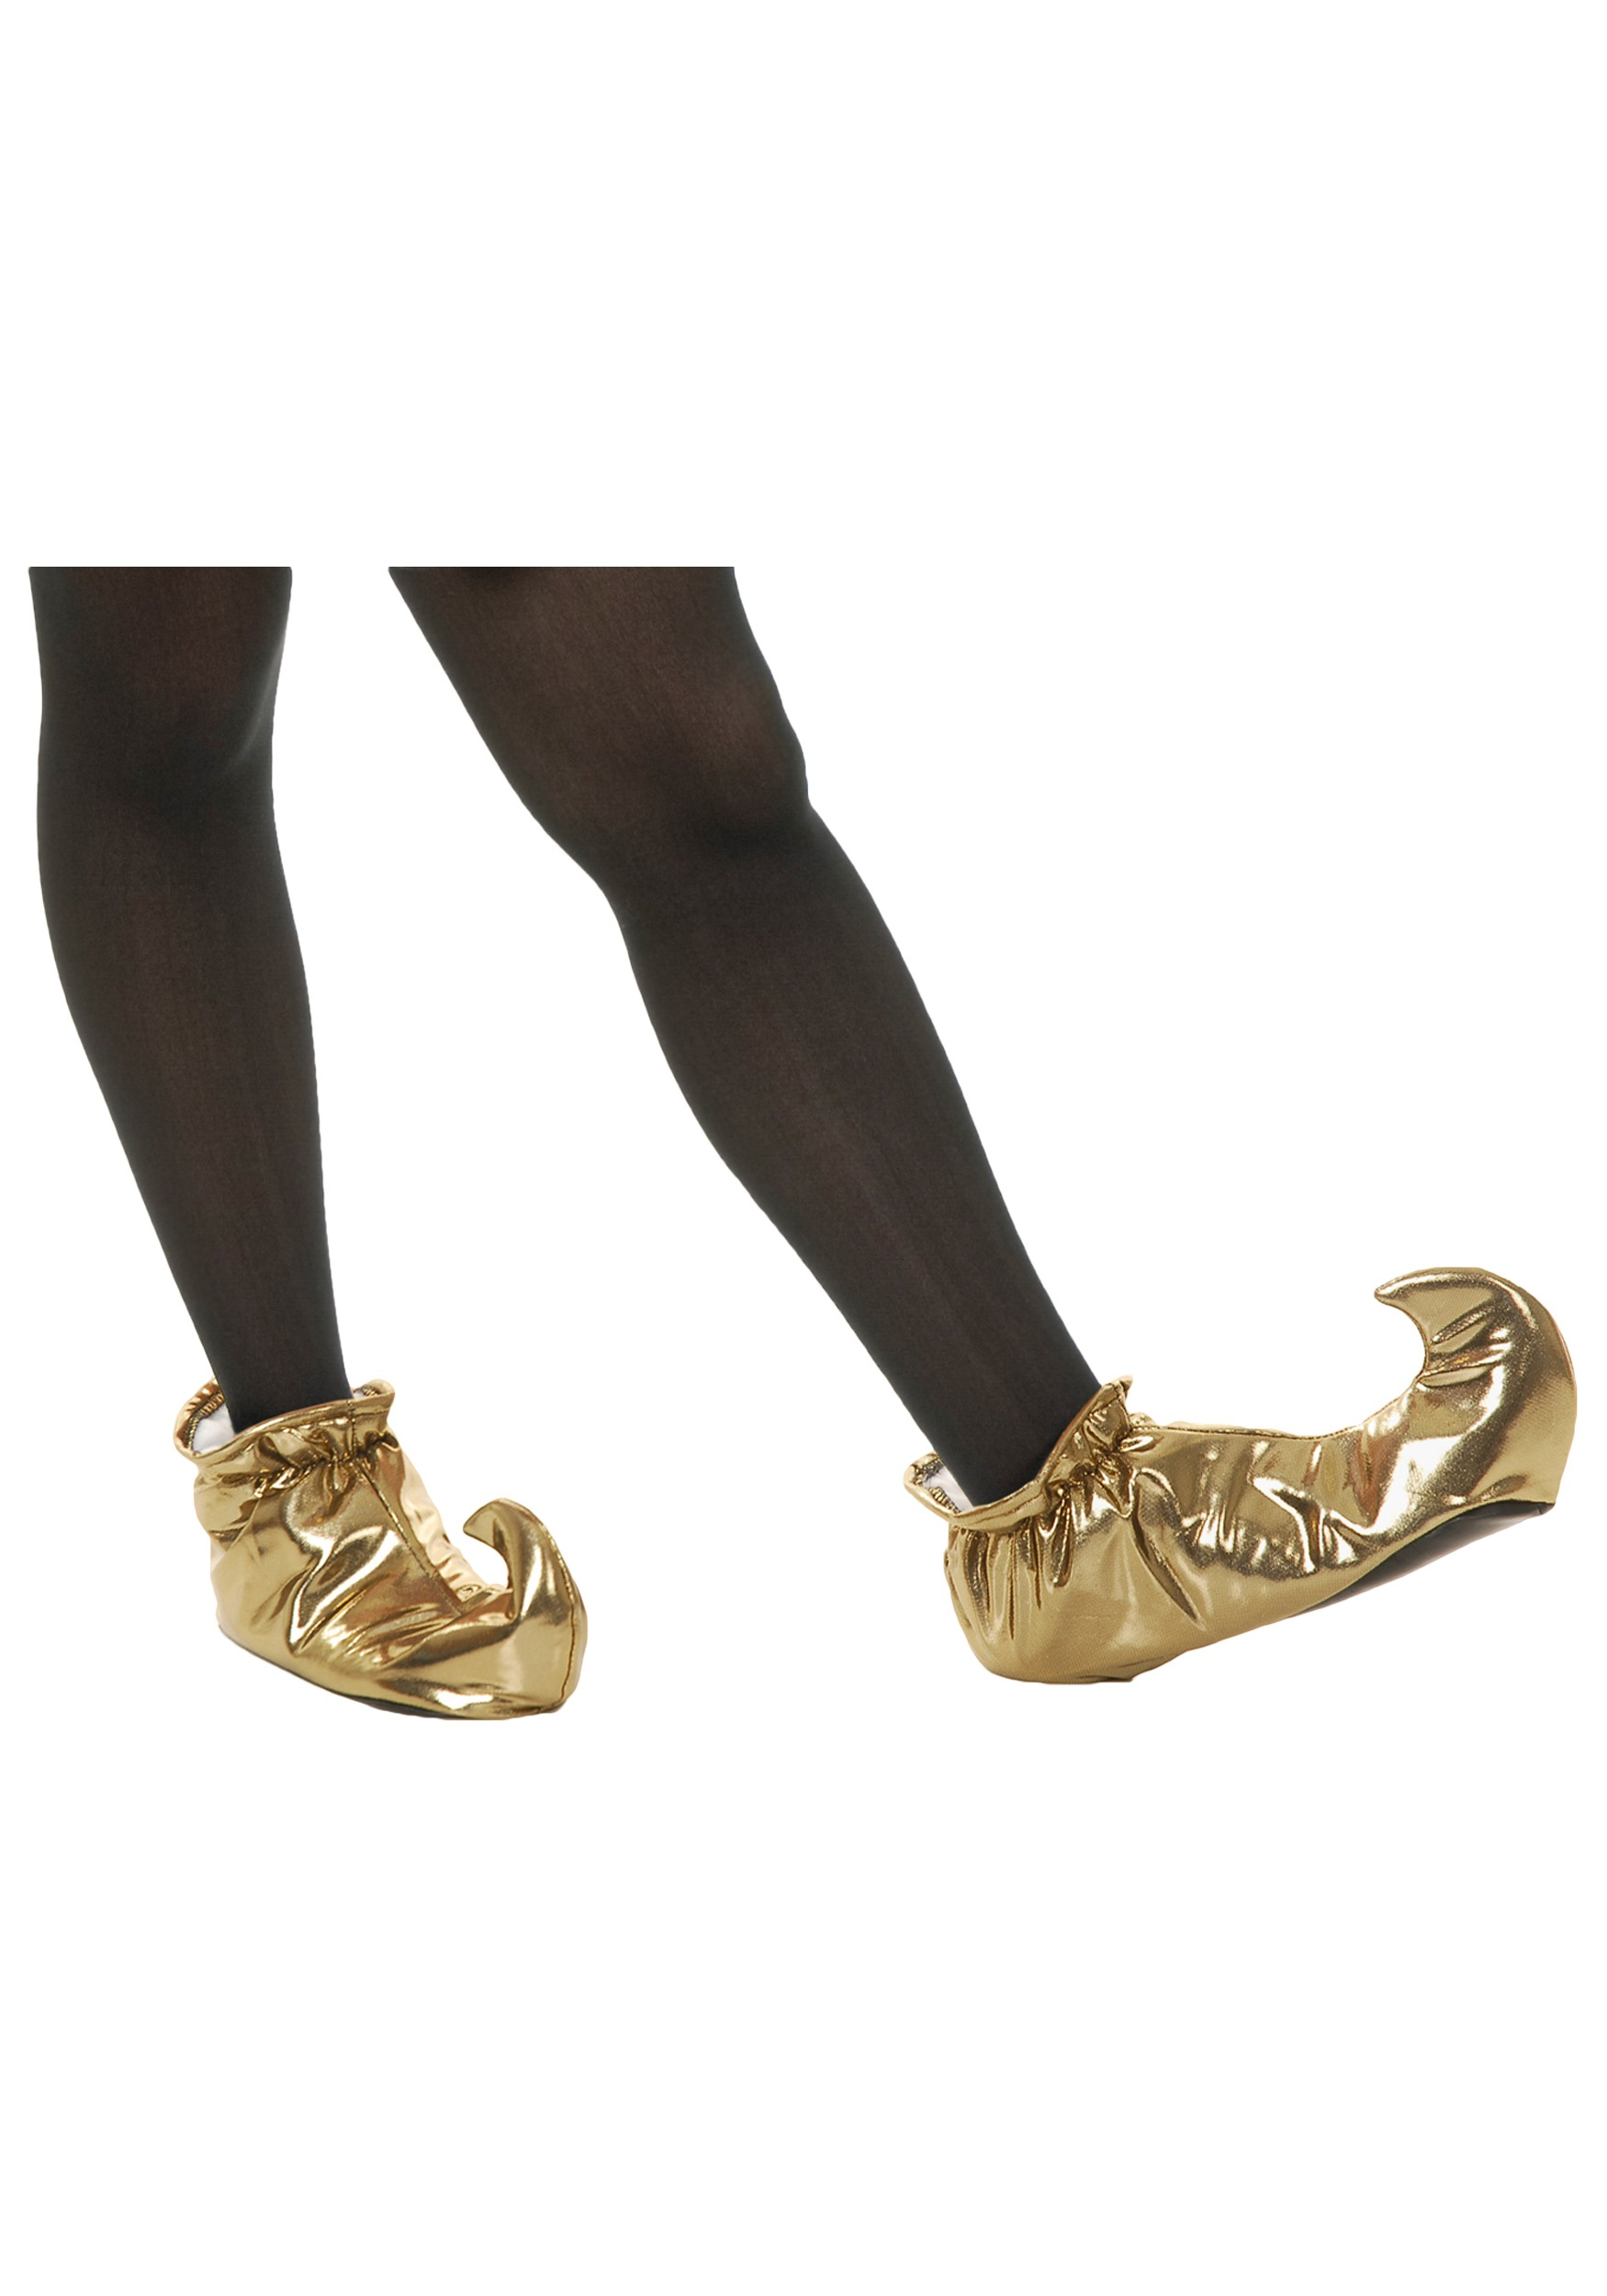 Gold Pointed Toe Genie Shoes  sc 1 st  Halloween Costume & Gold Pointed Toe Genie Shoes - Genie Costume Accessories